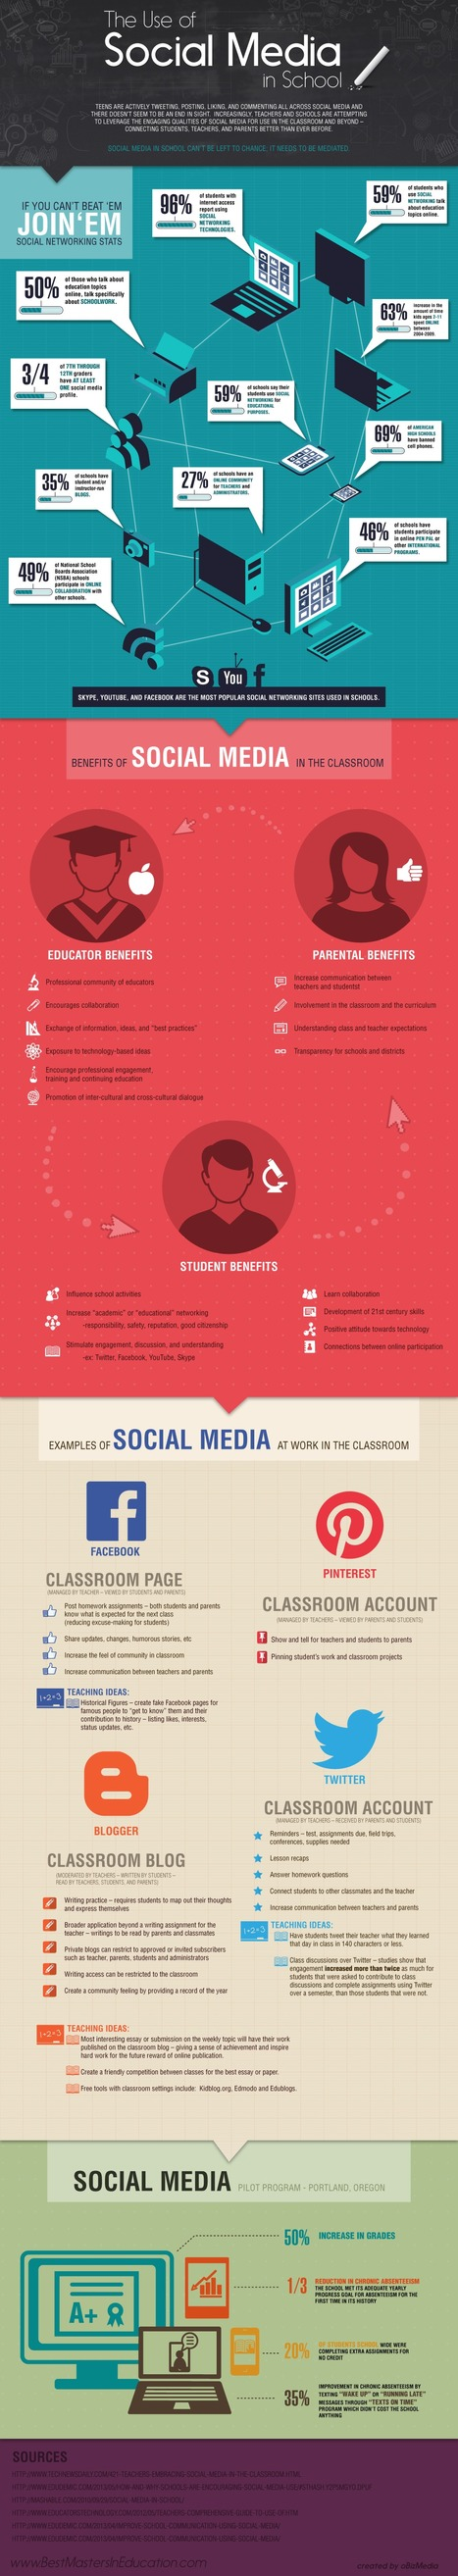 Social Media 101: Is There a Place For Social Media in Classrooms? [Infographic] | Research to Build and Present Knowledge | Scoop.it